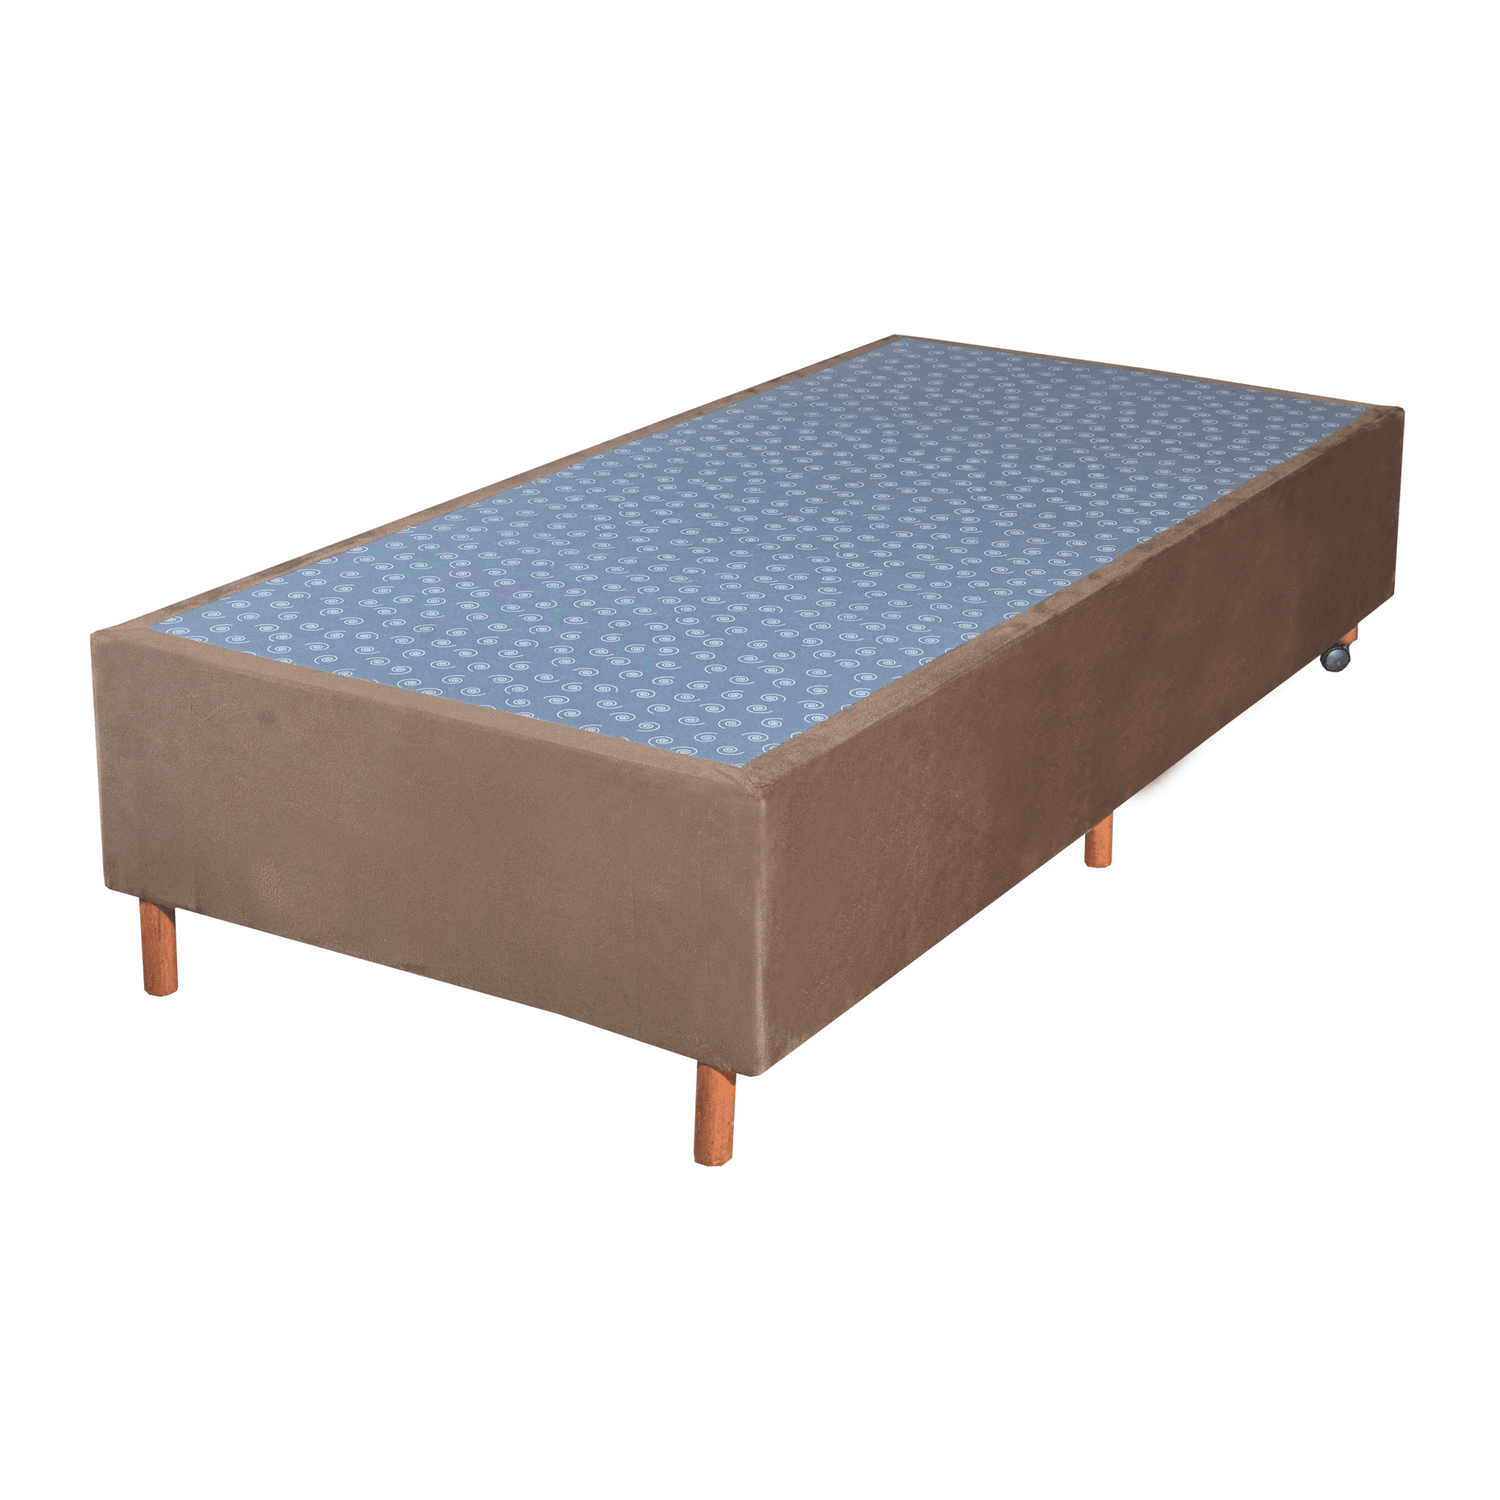 Cama Box Base Solteiro Veludo Marron 088x188x30